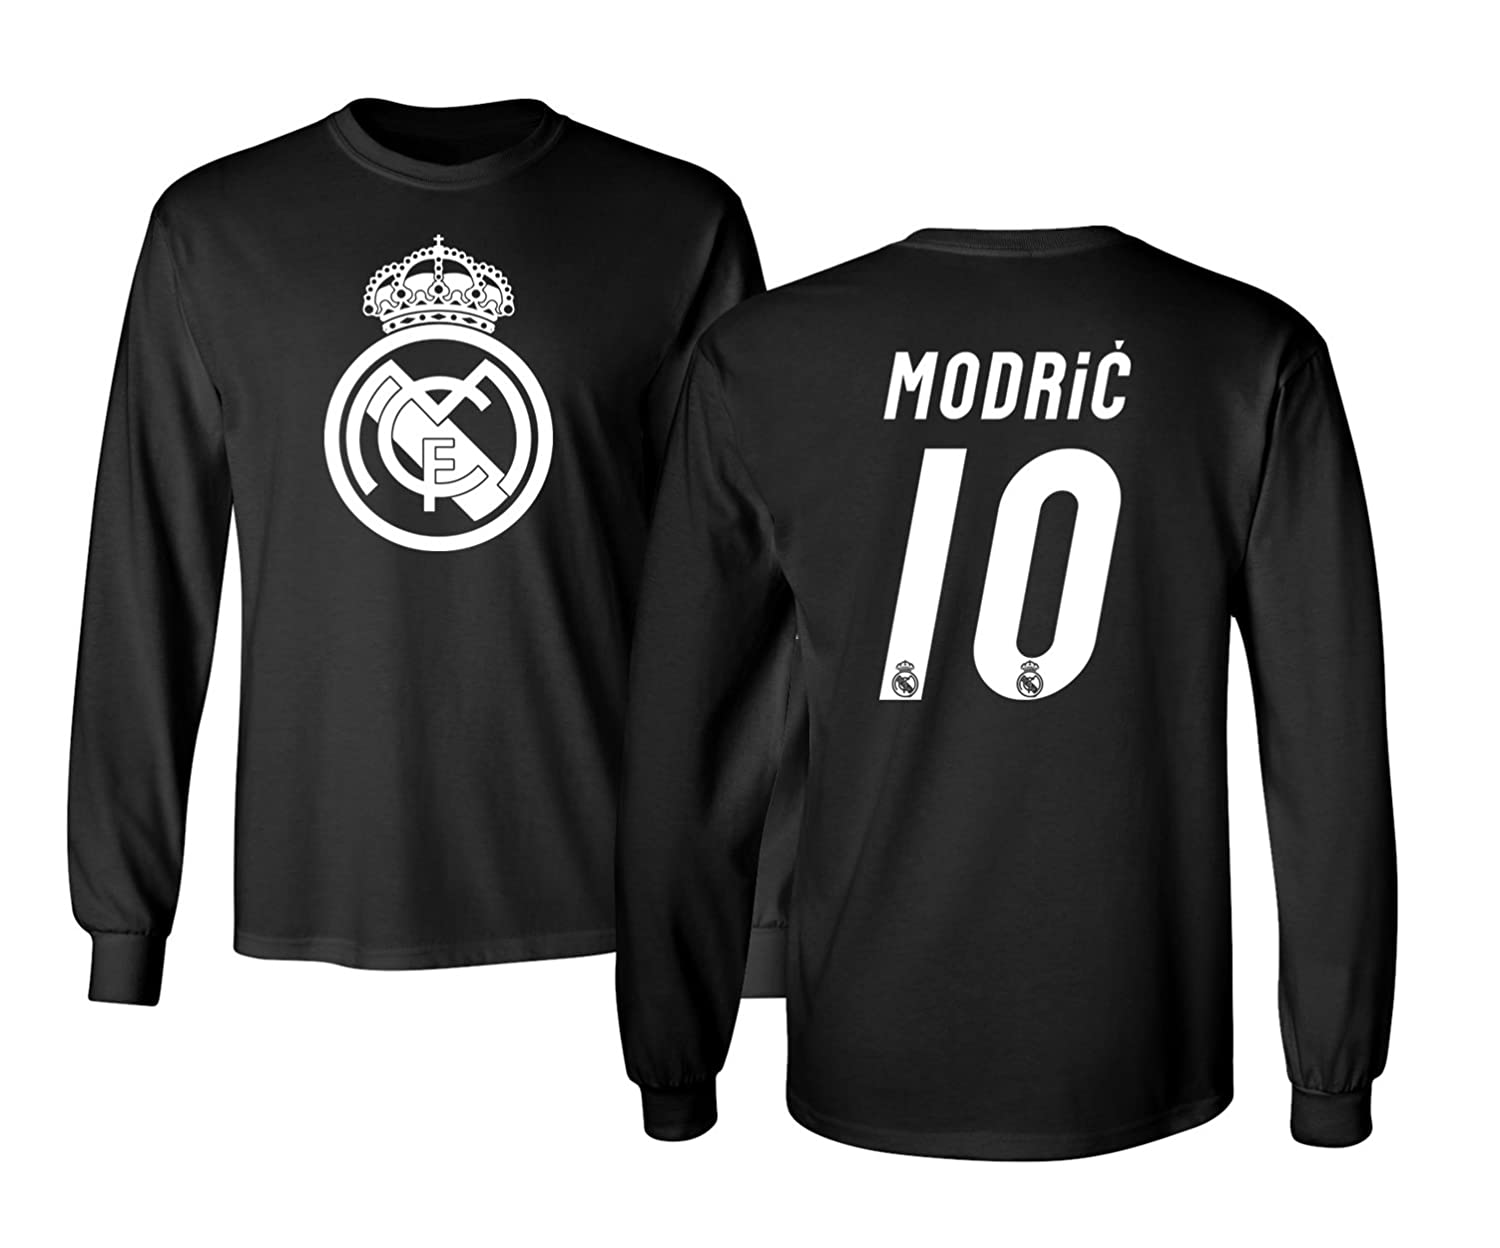 e5ae8dde143 Amazon.com   Real Madrid Luka Modric  10 Jersey Shirt Soccer Football Men s  Long Sleeve T-Shirt   Sports   Outdoors